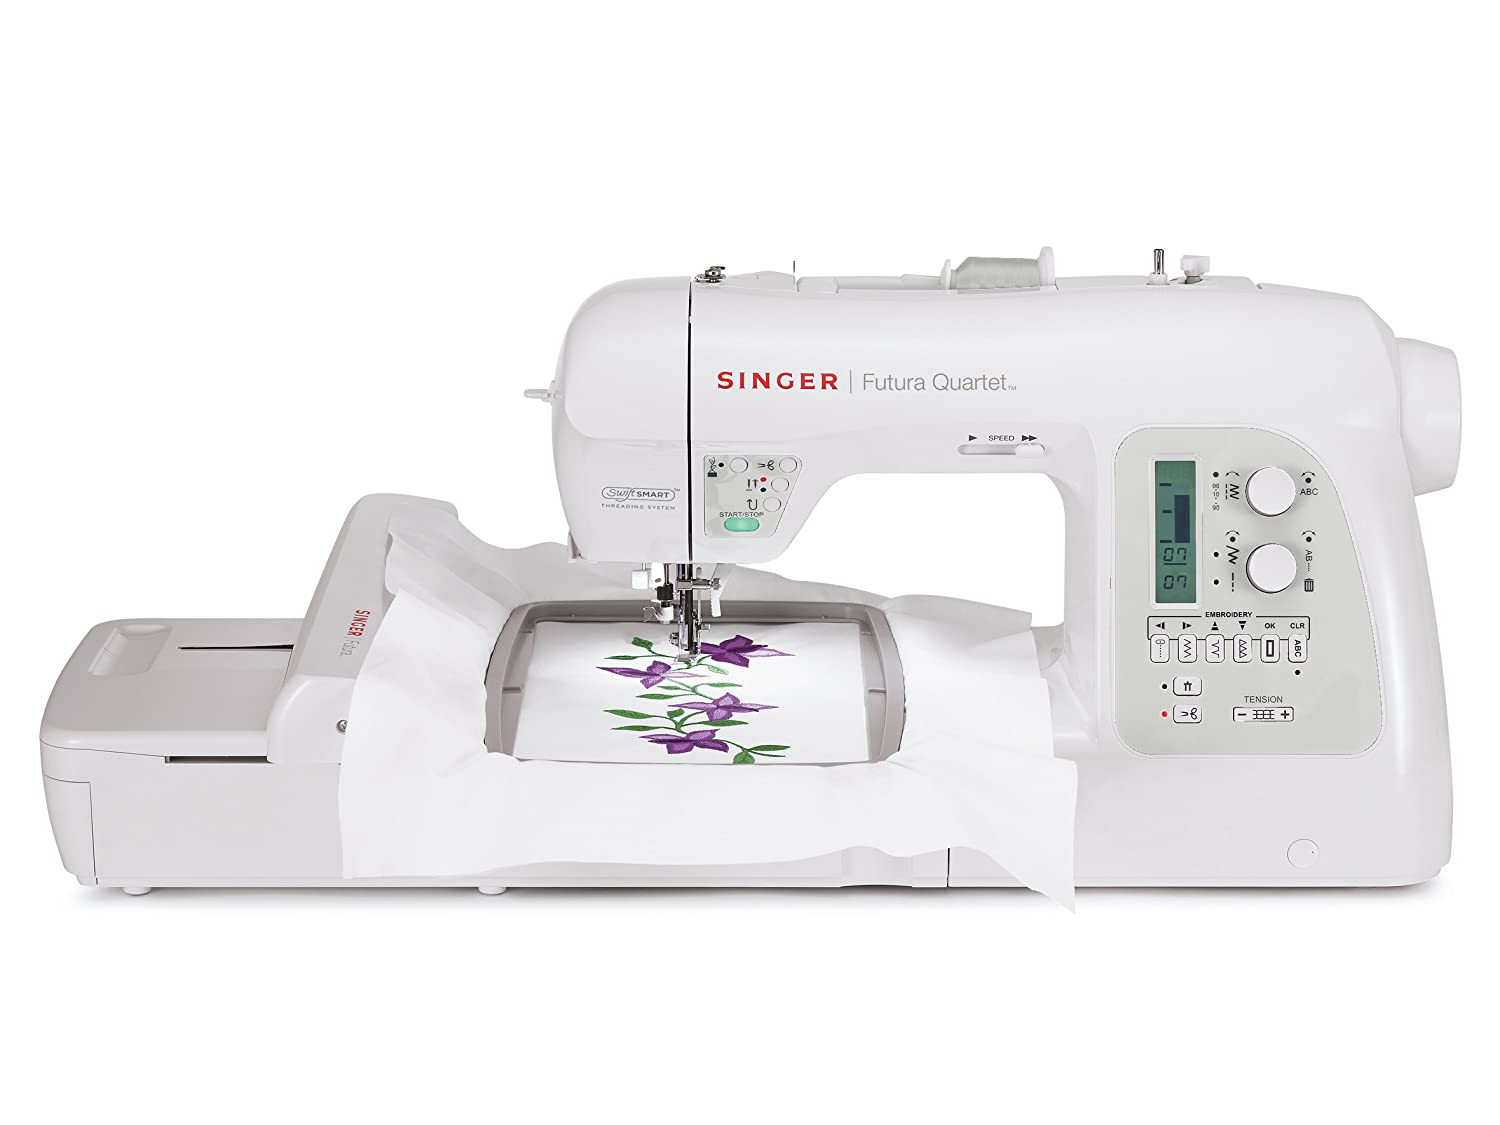 SINGER 4-in-1 Futura Quartet Portable Sewing, Embroidery, Quilting and Serging Machine with Bonus Accessories SEQS-6700